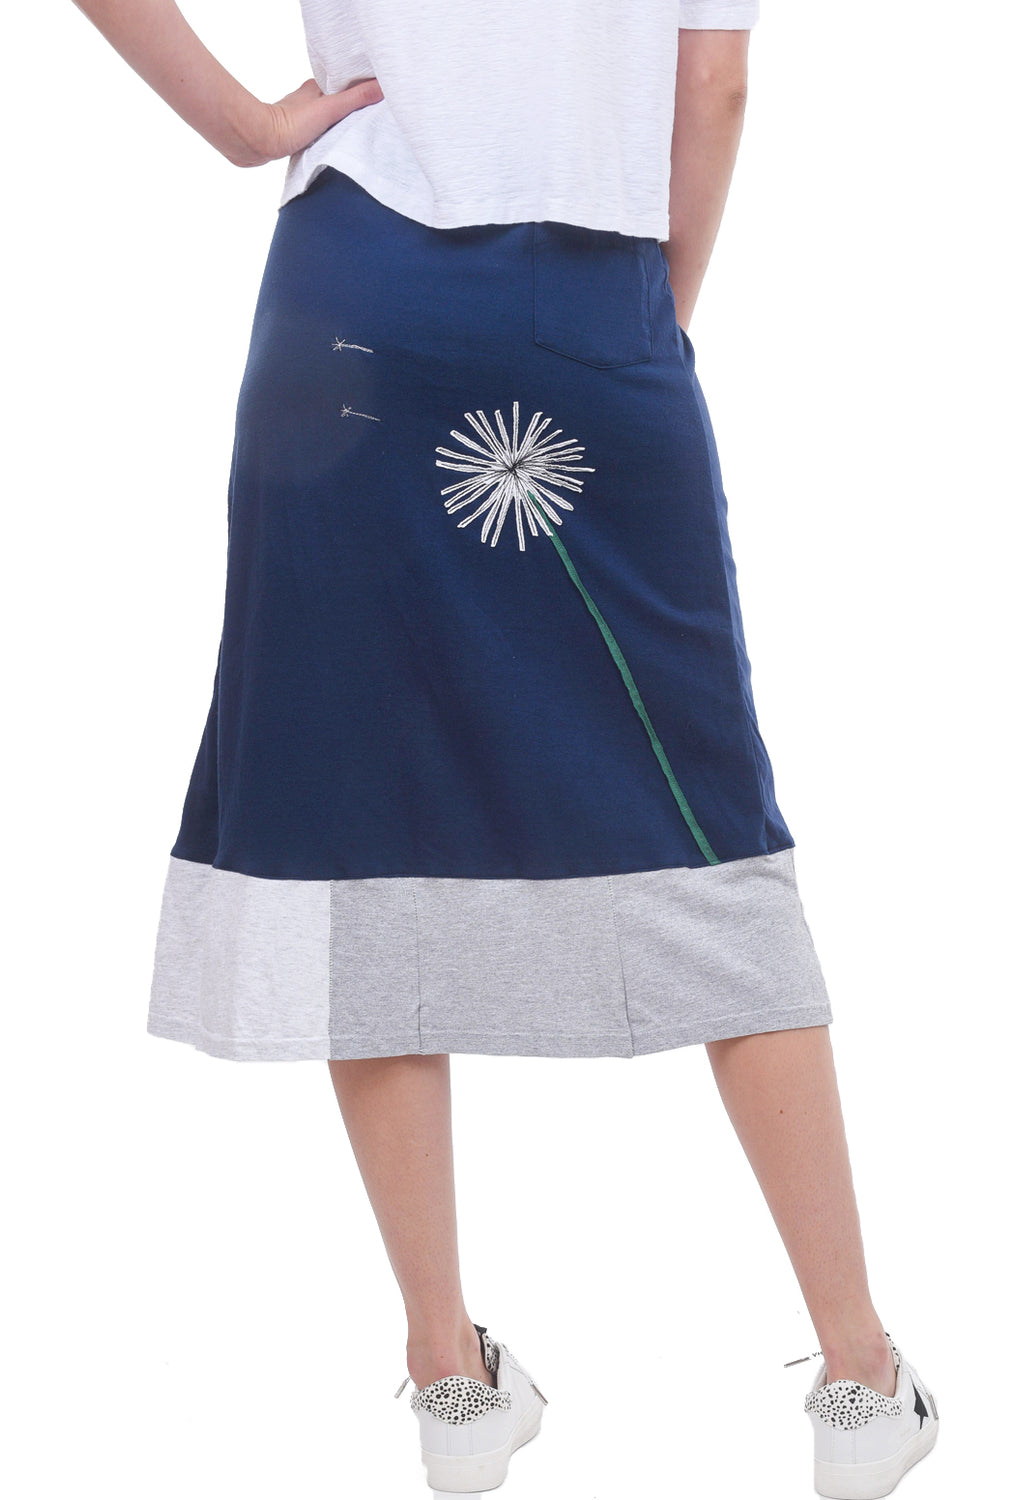 Sardine Clothing Company Longer Recycled Tee Skirt, Blue Dandelion